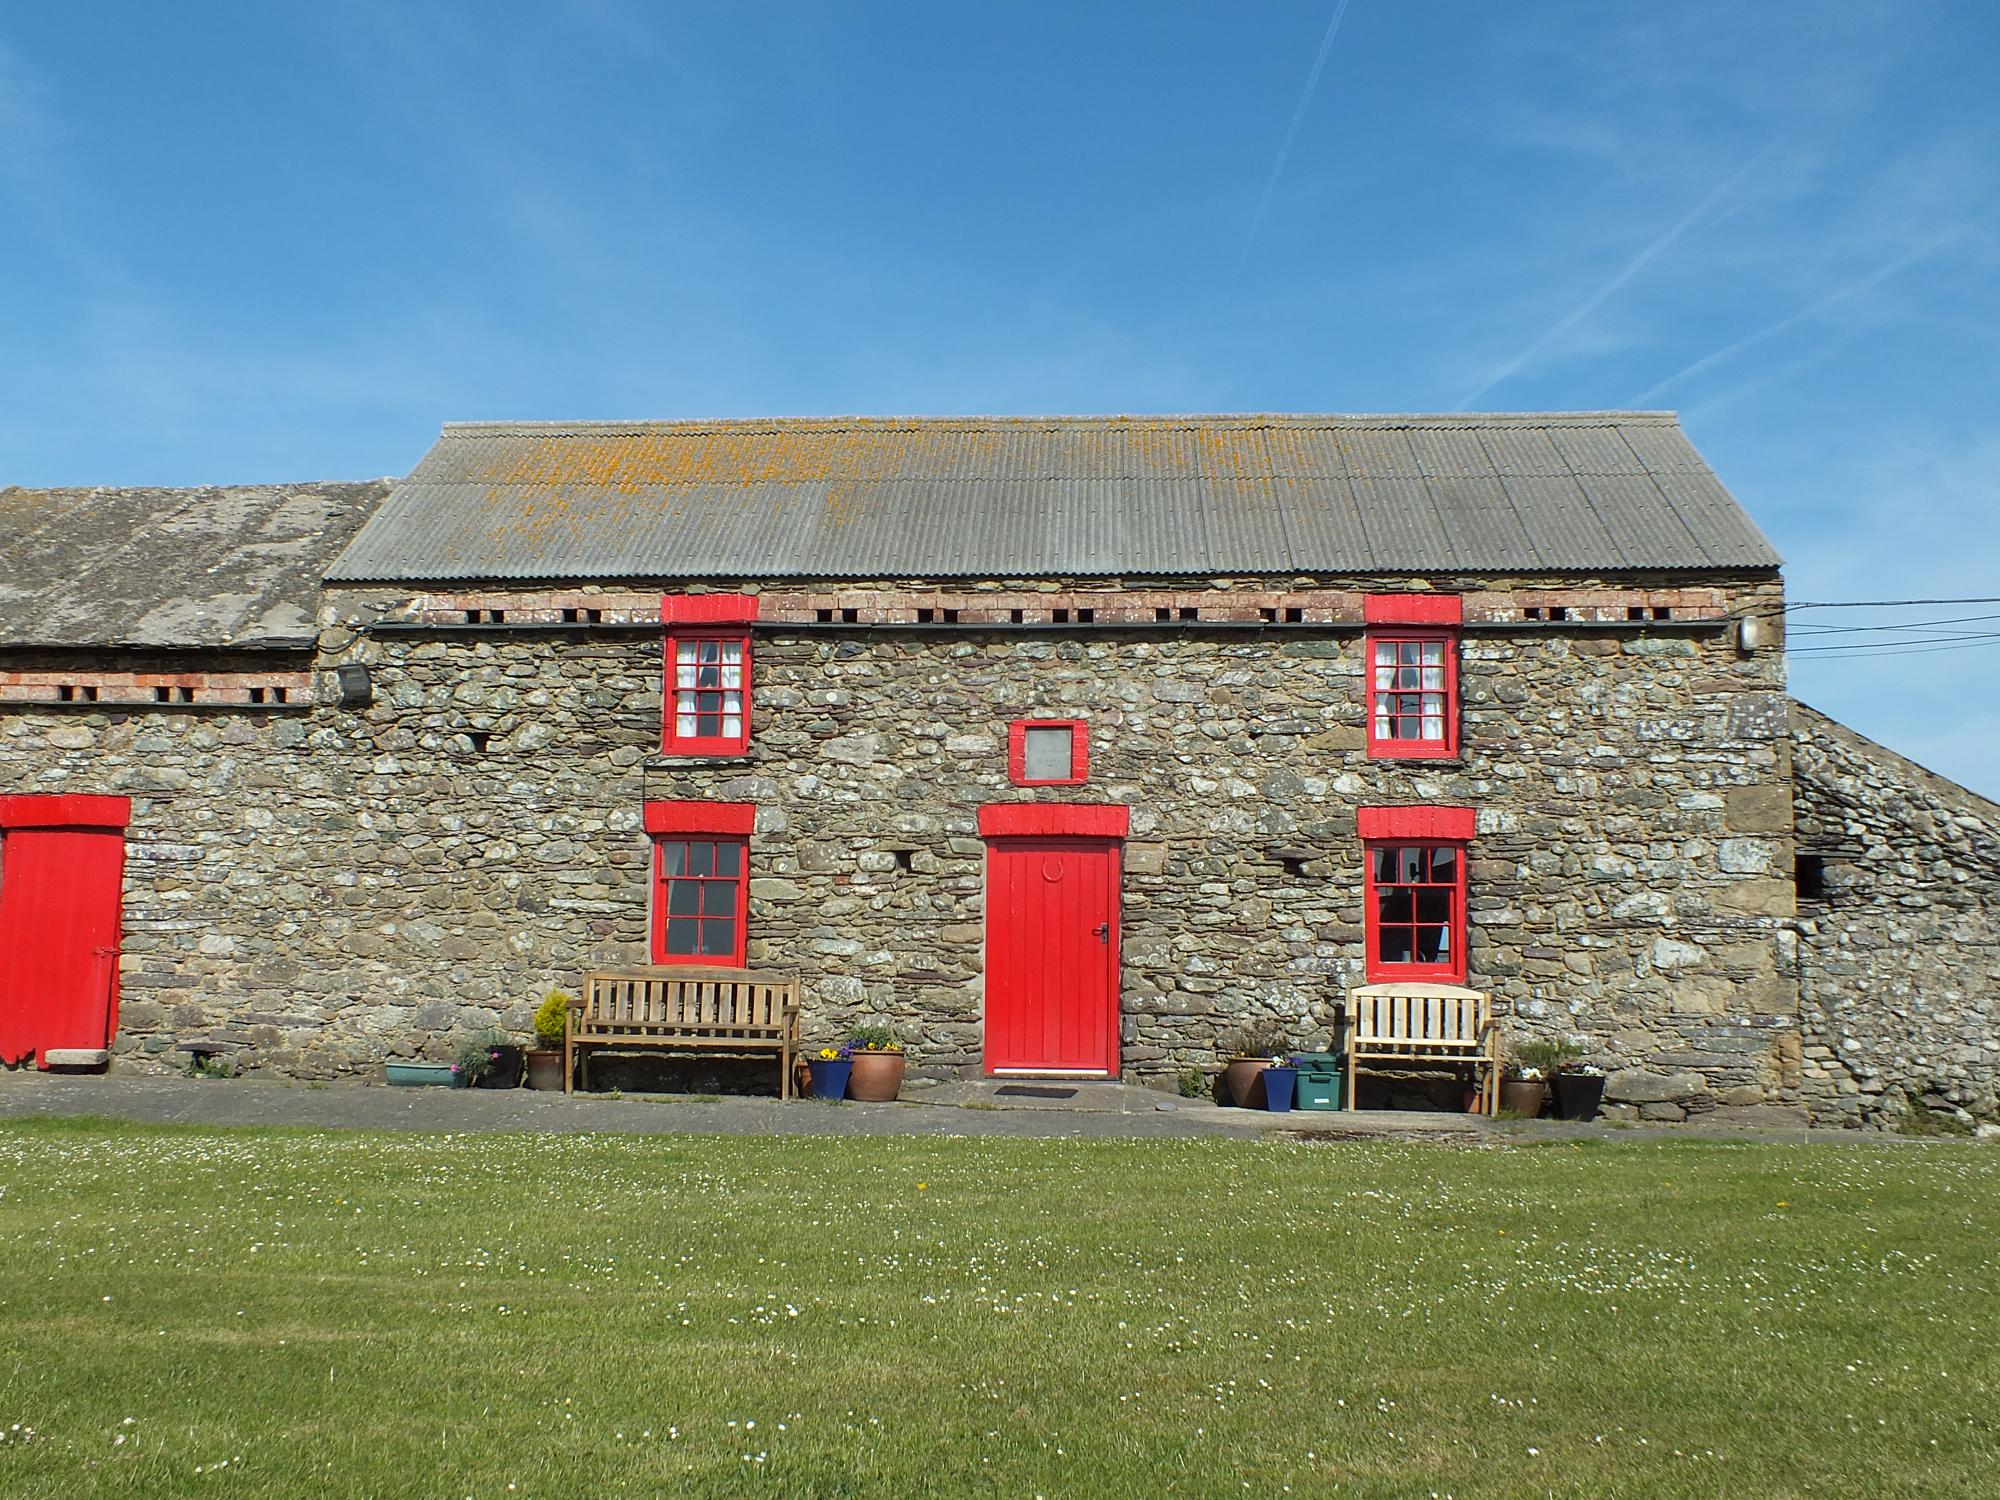 Self-Catering in Pembrokeshire holidays at Cool Places